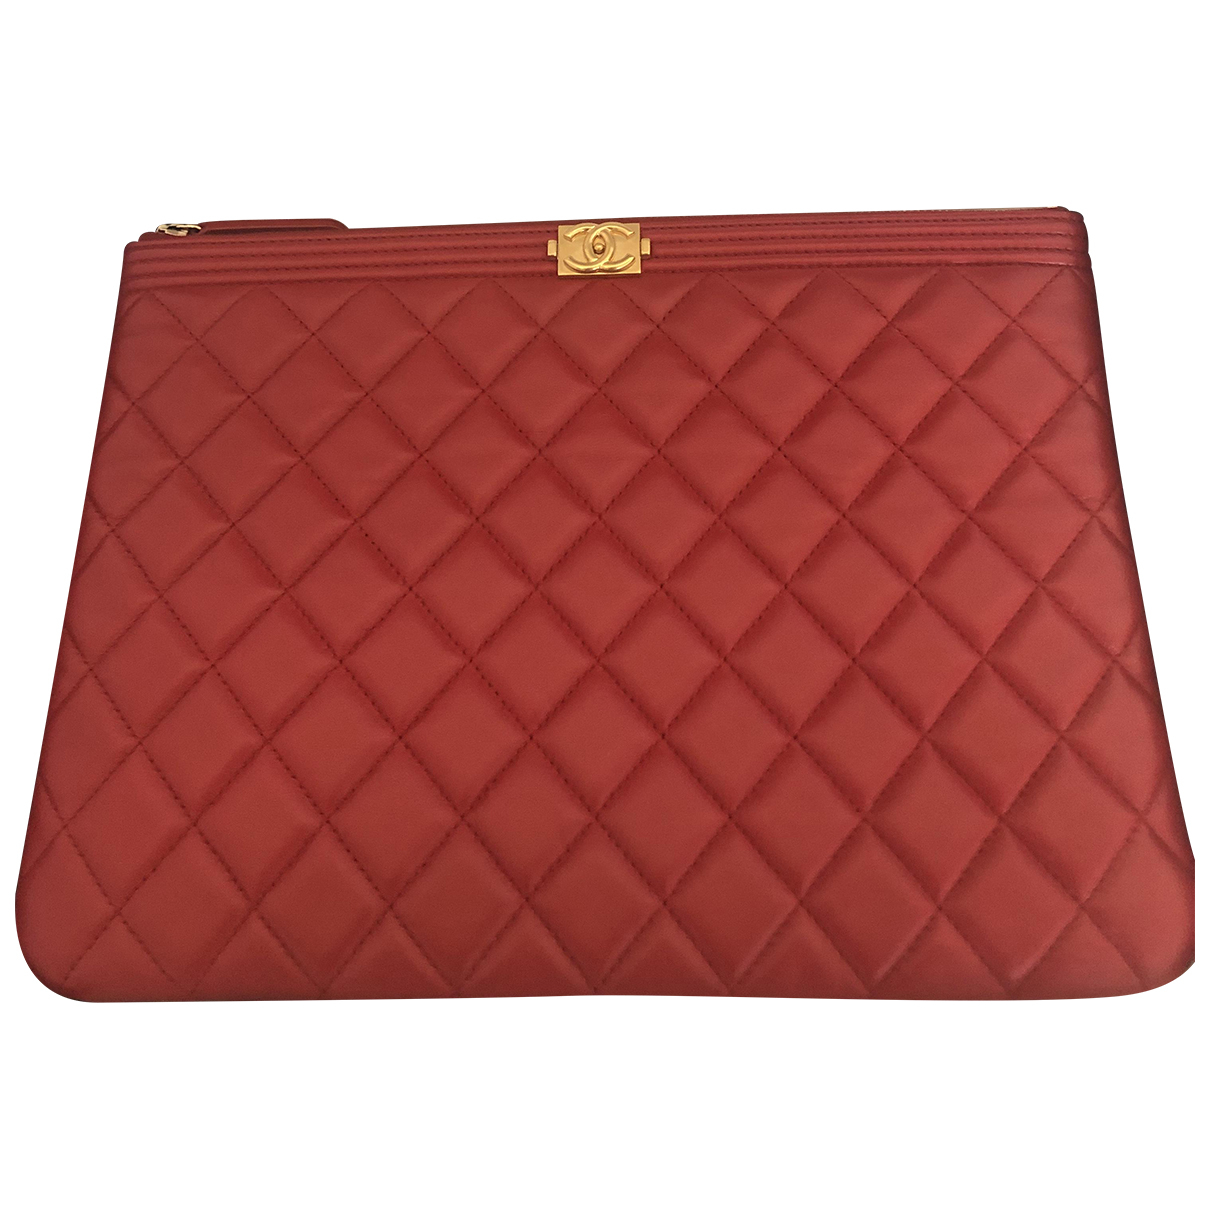 Chanel Boy Red Leather Clutch bag for Women N